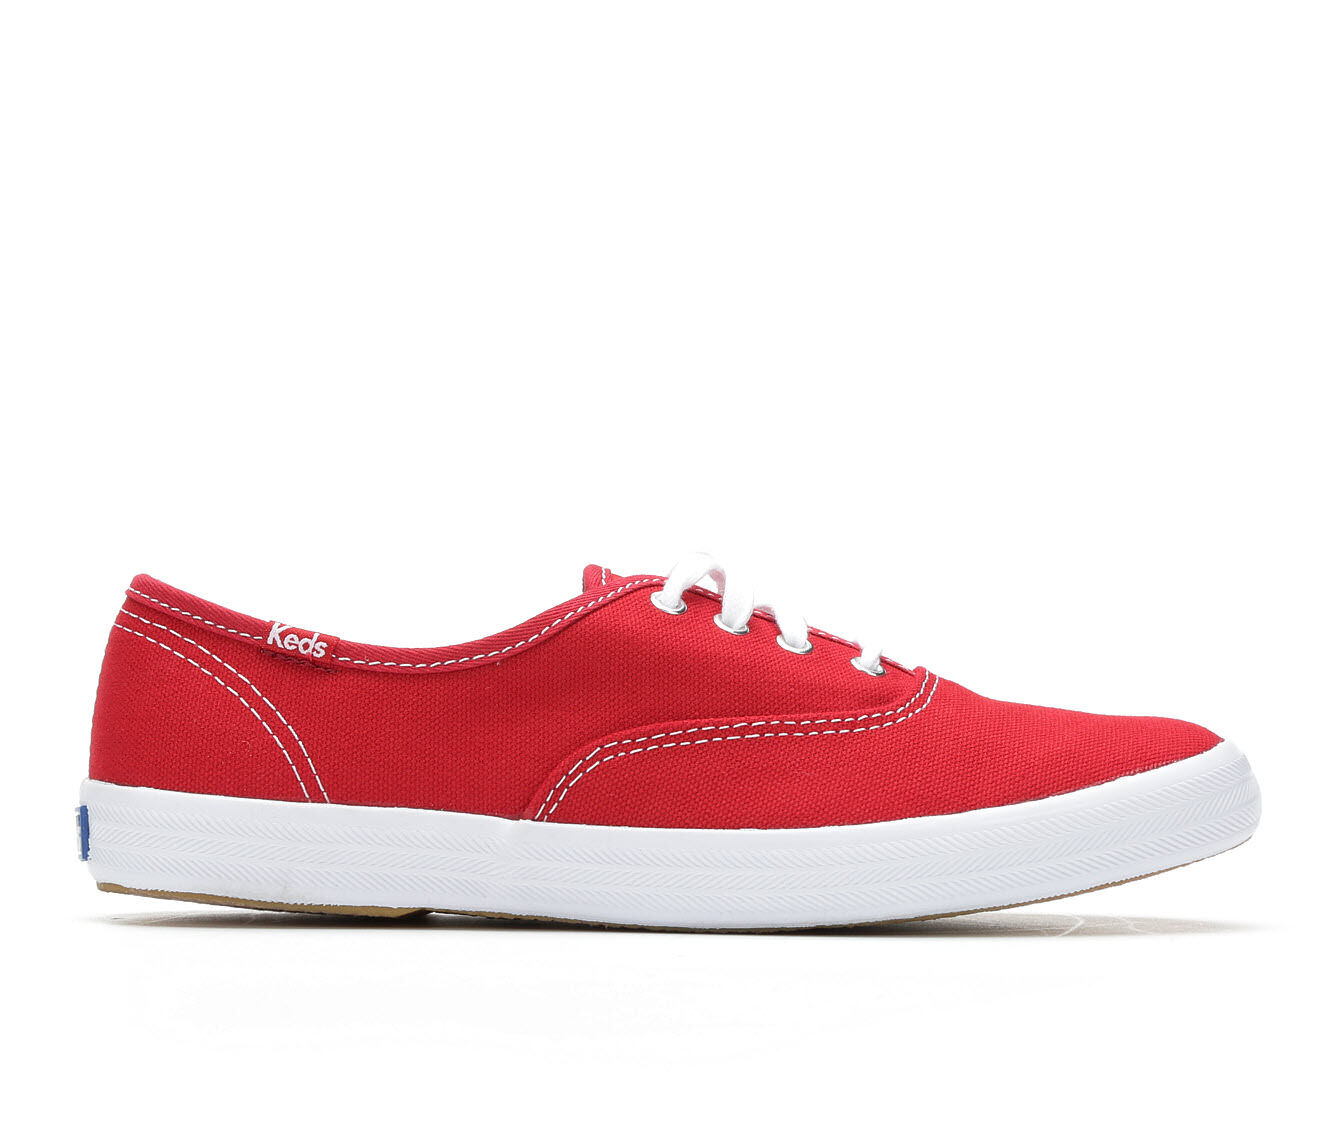 factory direct Women's Keds Champion Canvas Sneakers Red